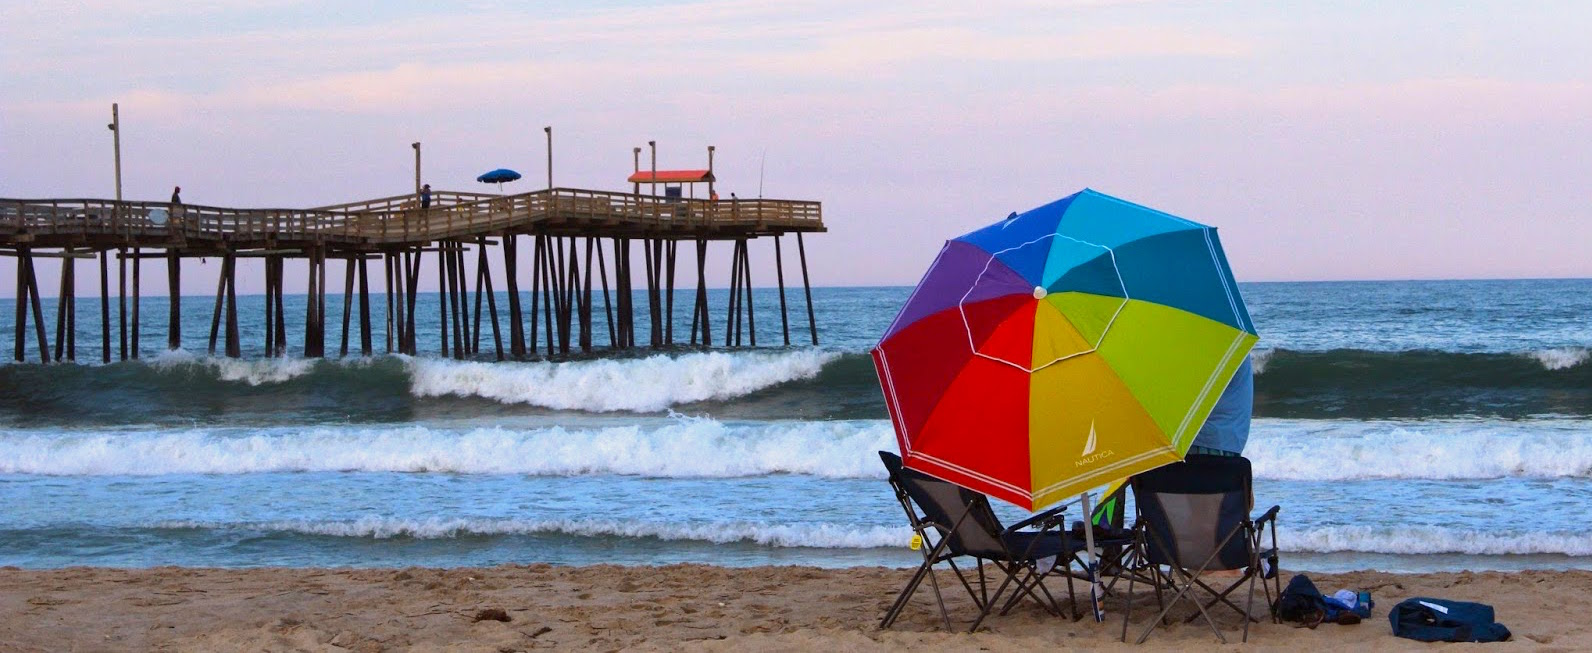 beach umbrella copy